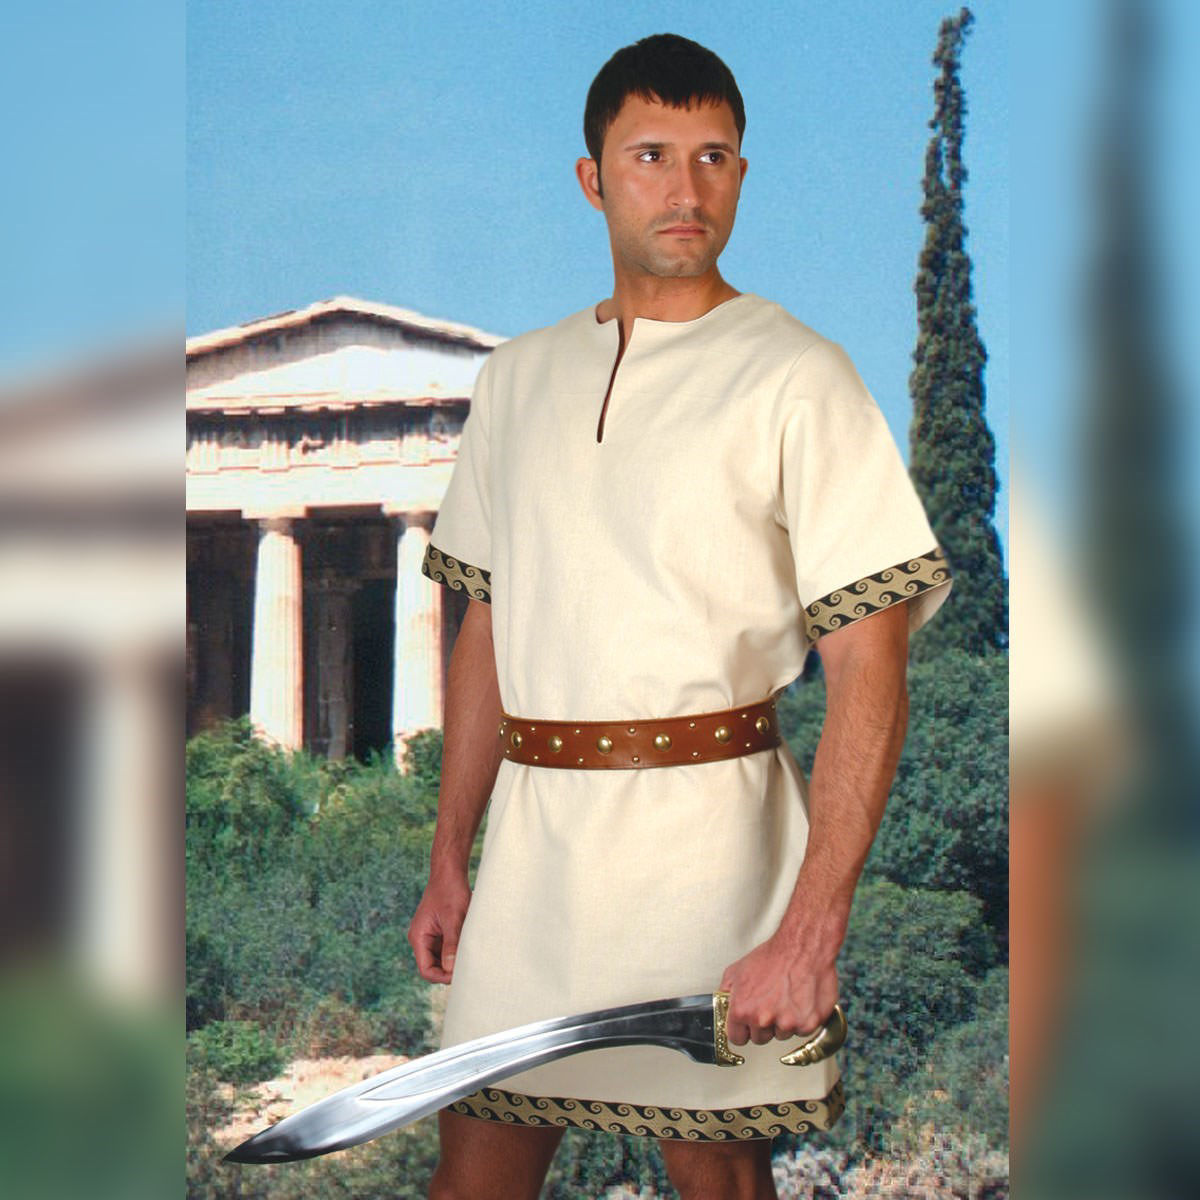 Short cut Greek tunic is 100% woven cotton, short sleeves and bottom are accented with a Greek trim